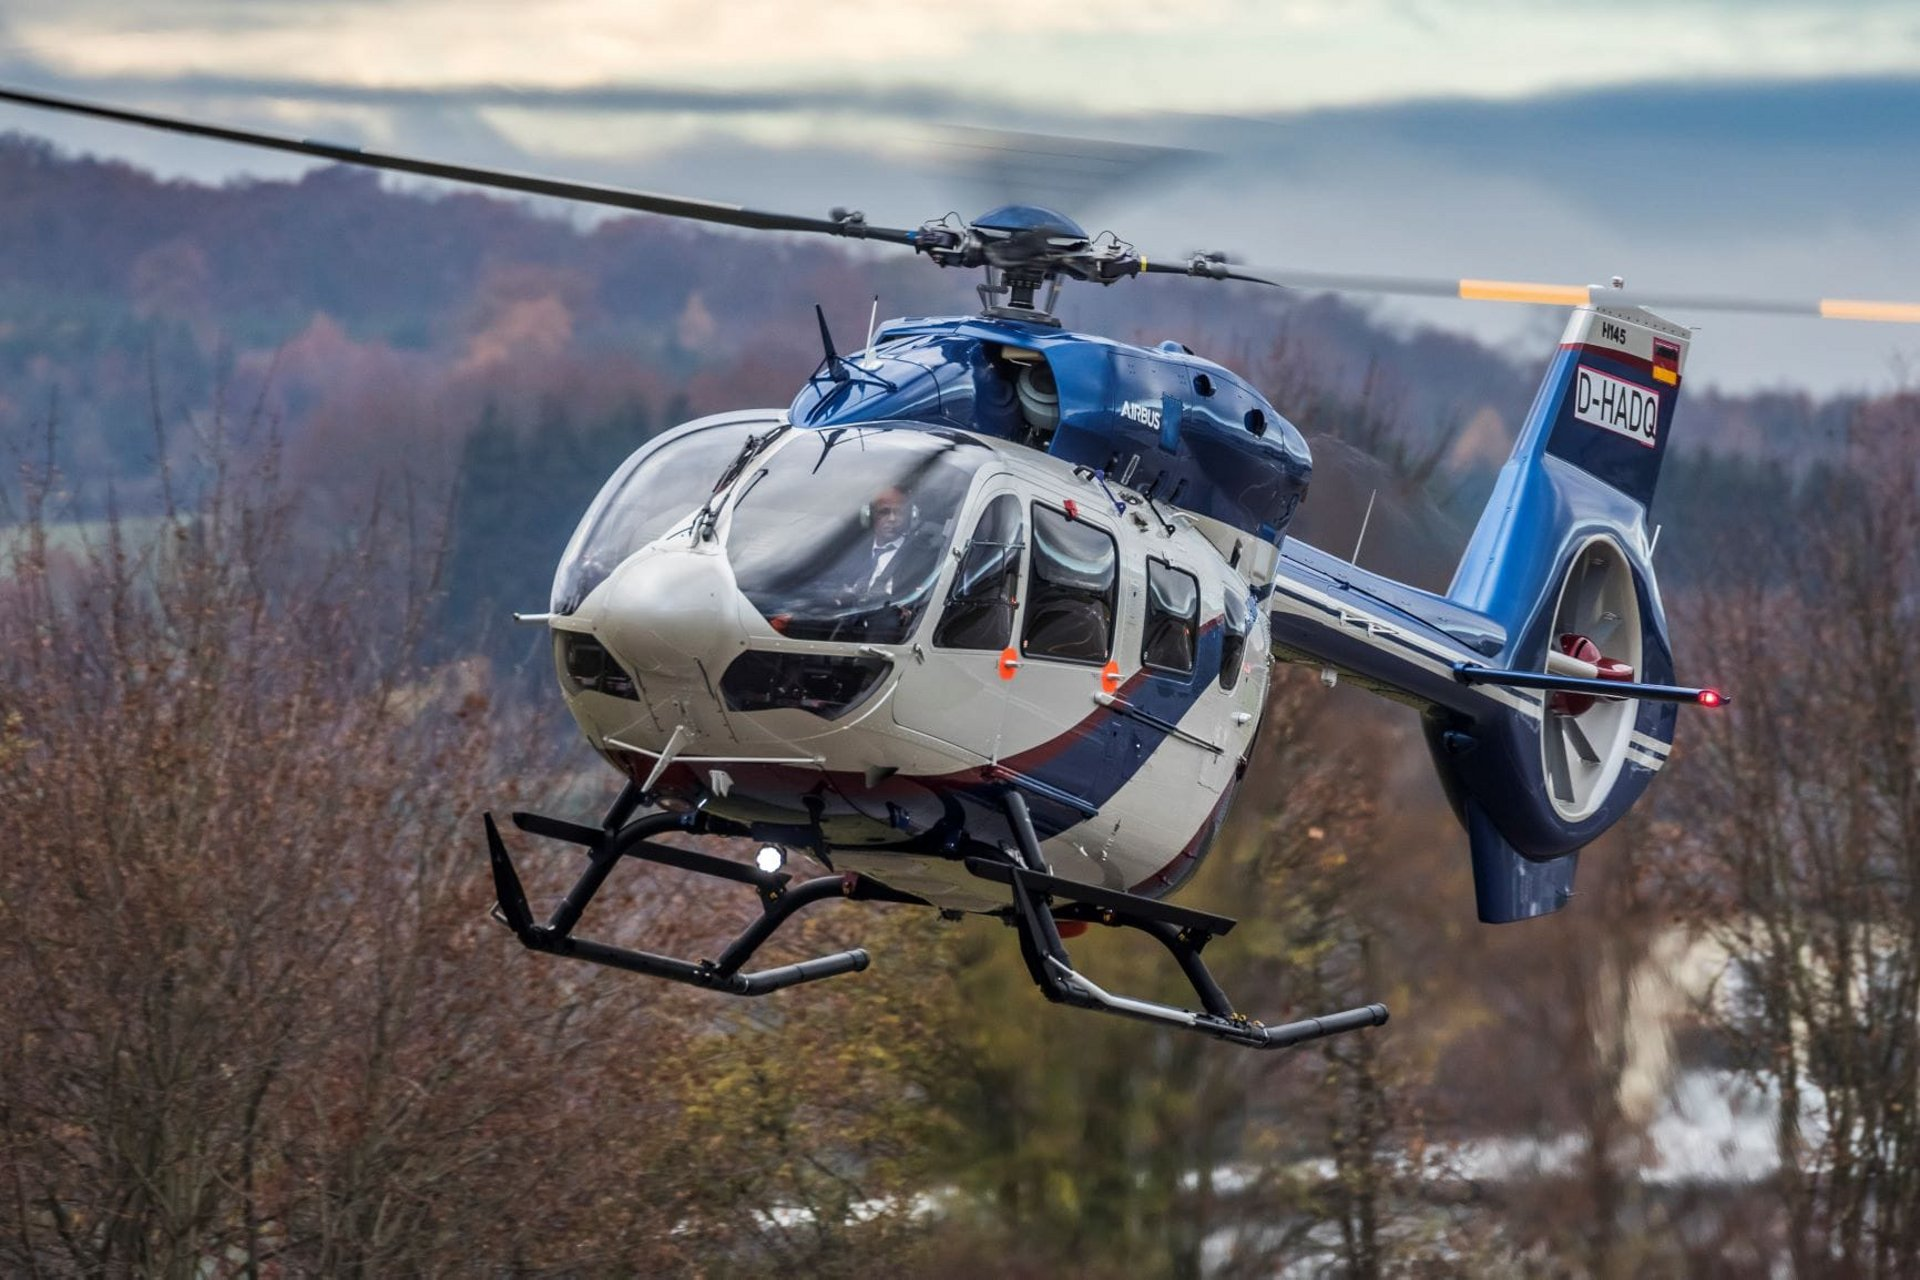 H145 © Airbus Helicopters